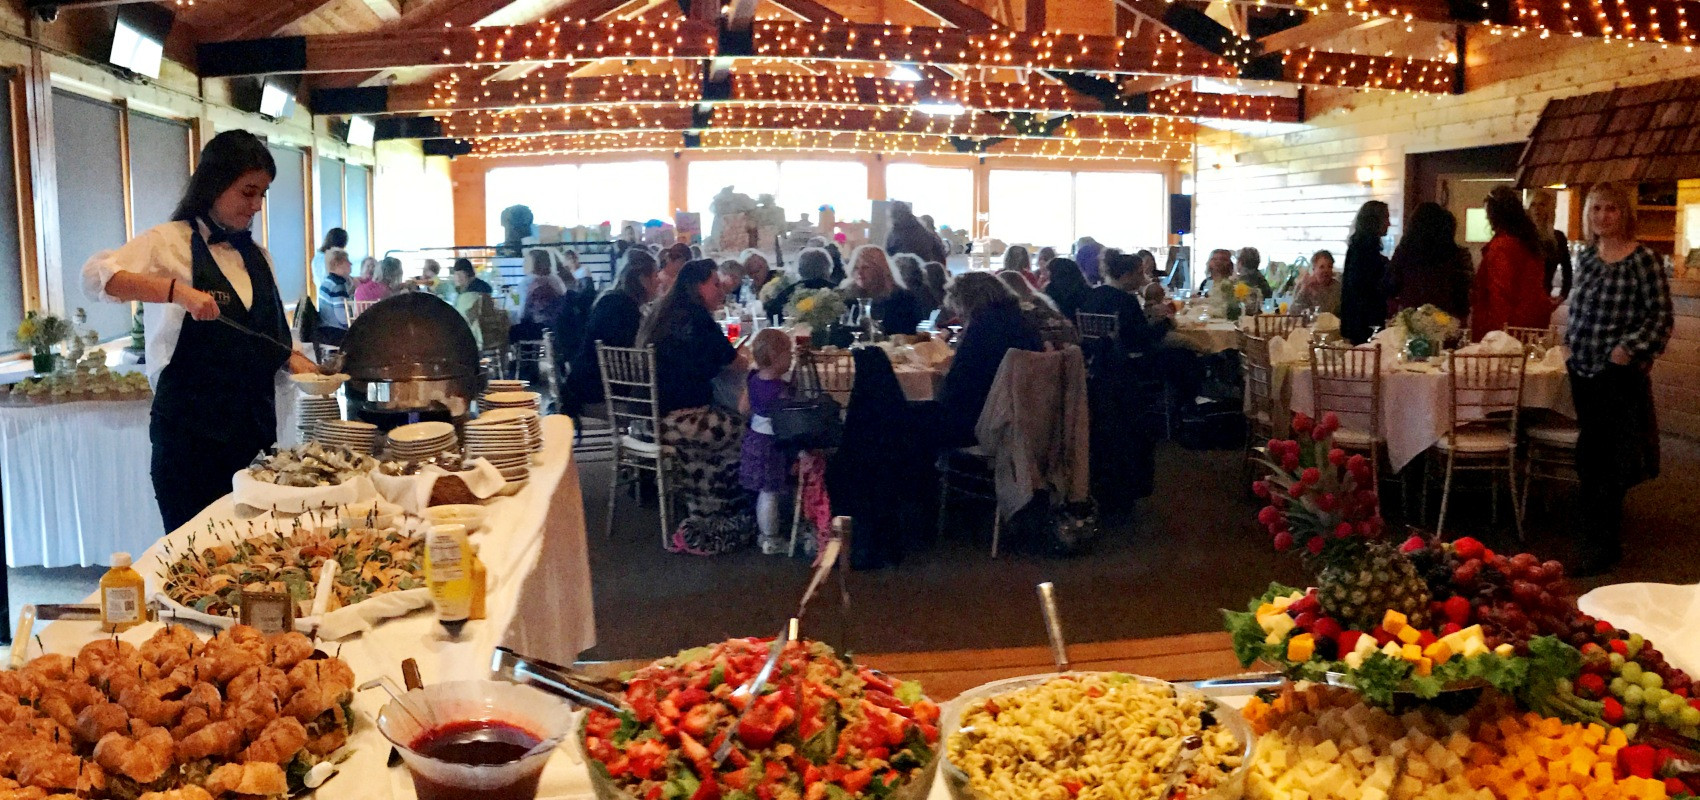 Easter Dinner Rochester Ny  EASTER BRUNCH At Myth Banquet hall near Lake Orion and